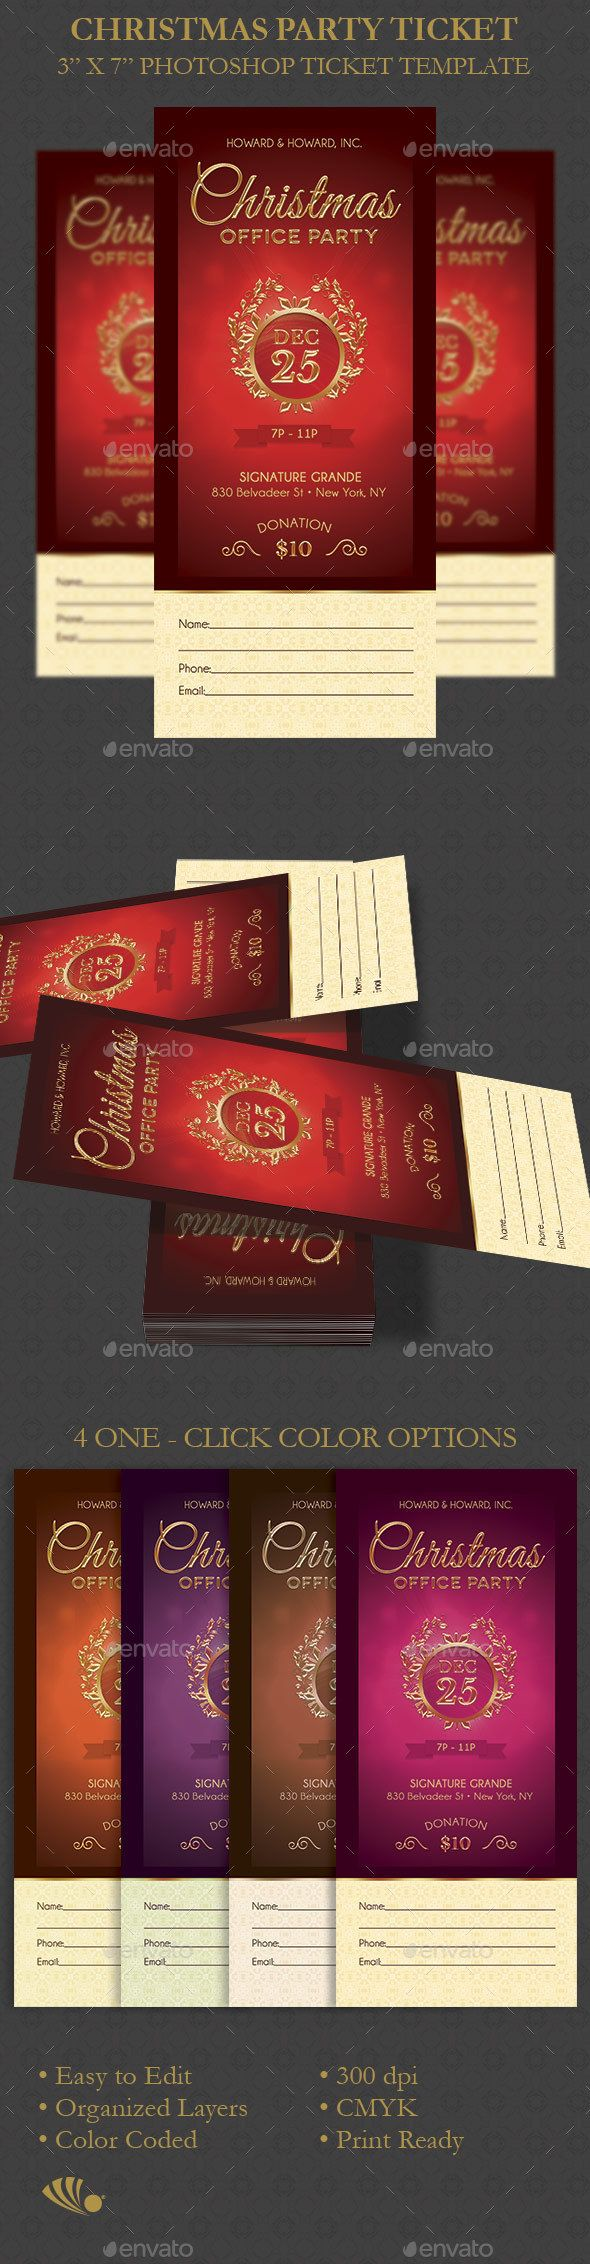 Christmas Party Ticket Template 14 best Church